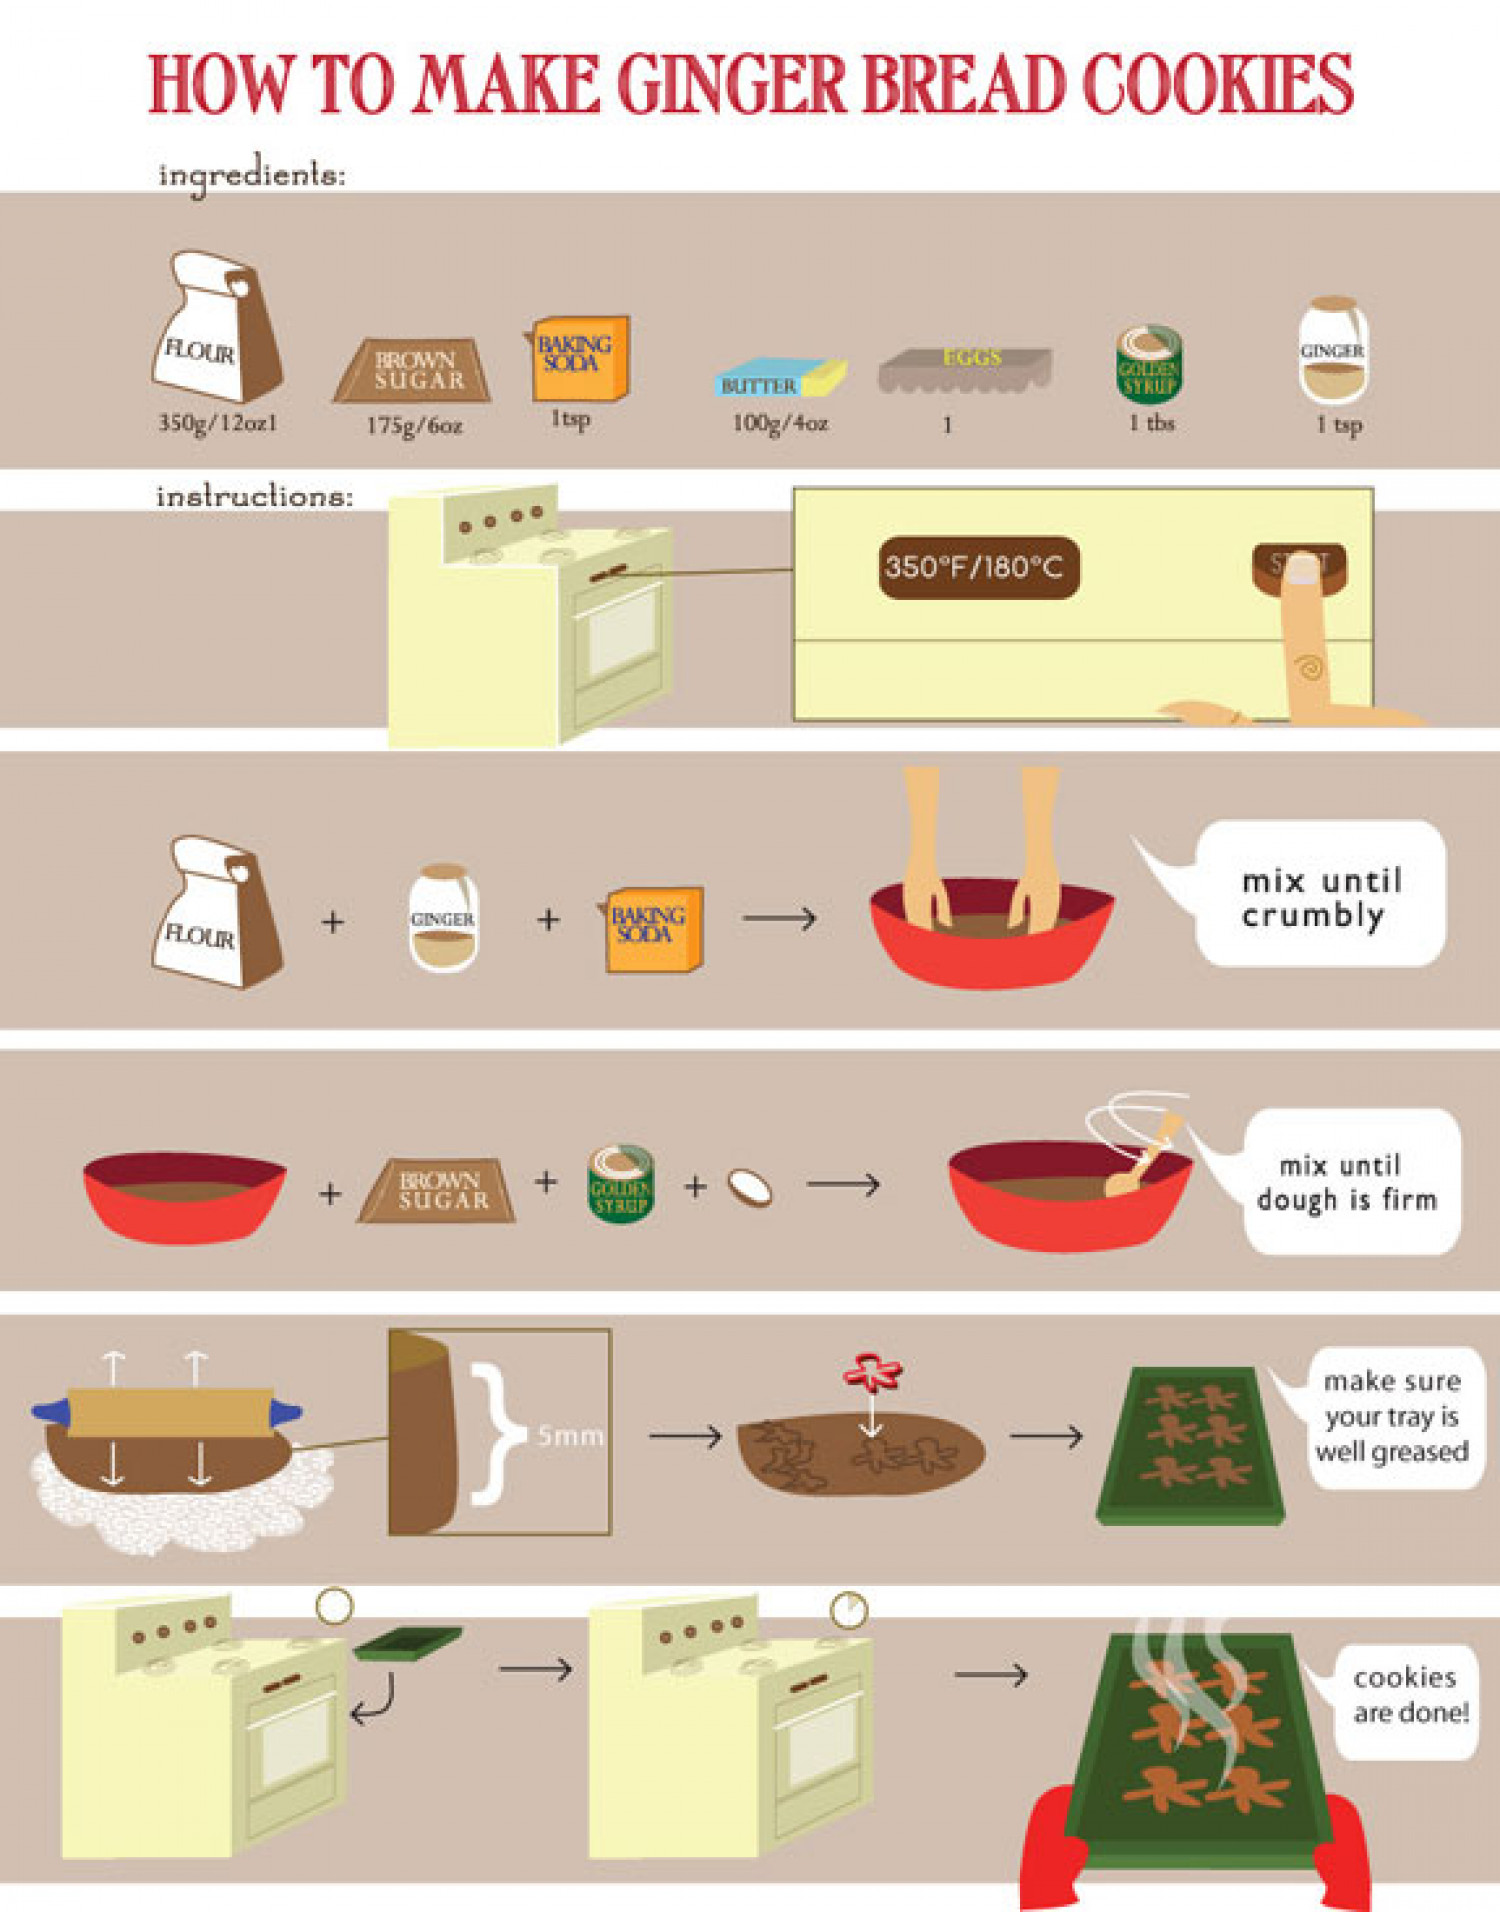 A Quick Recipe for Gingerbread Cookies Infographic